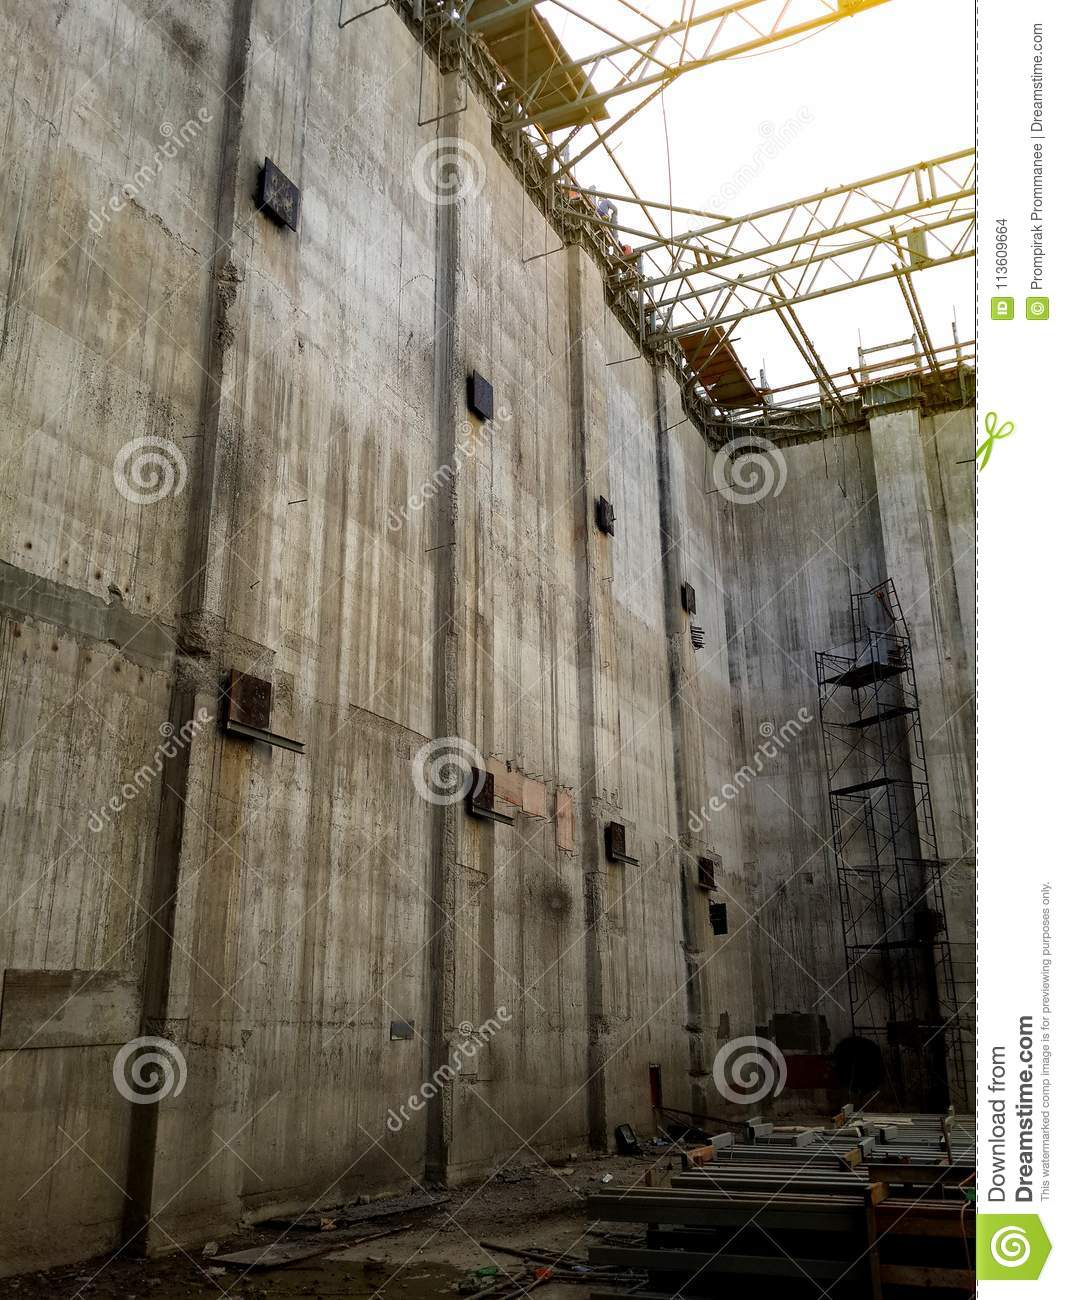 Concrete Wall Of Big Water Tank Building Under Construction